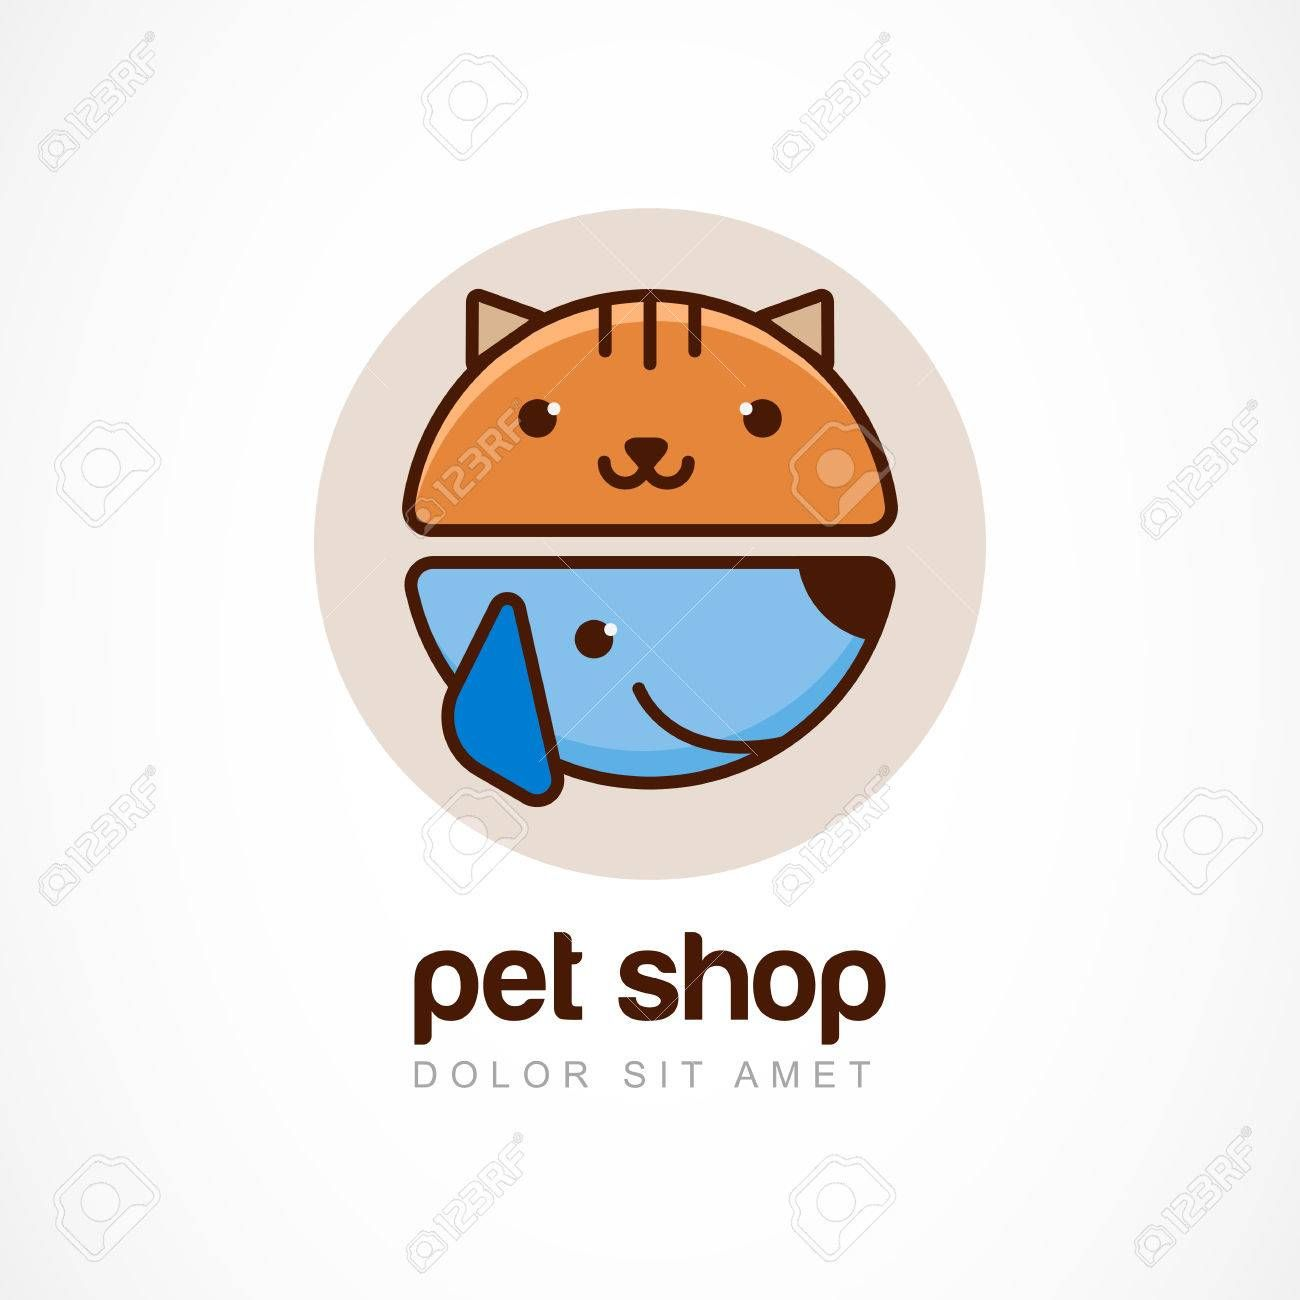 Abstract Design Concept For Pet Shop Or Veterinary Pet Shop Logo Pet Shop Pet Care Logo